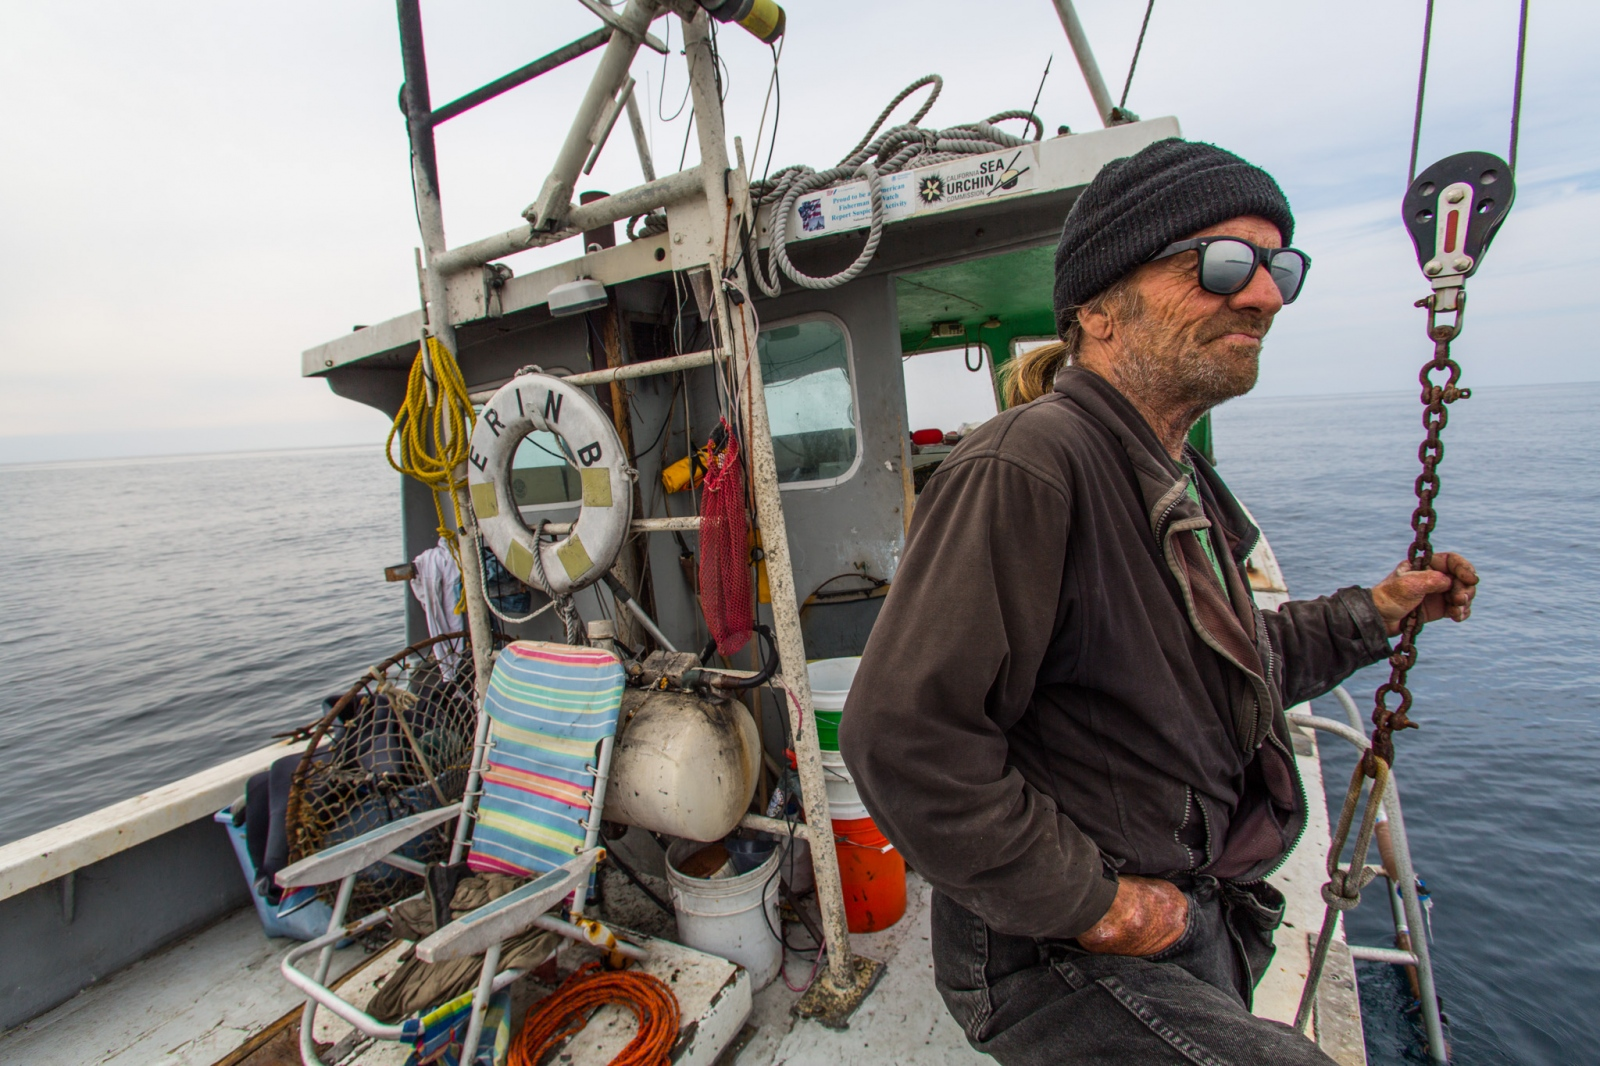 Kenny on the Erin B. out of San Diego, CA.From a personal project on new models in fisheries management.